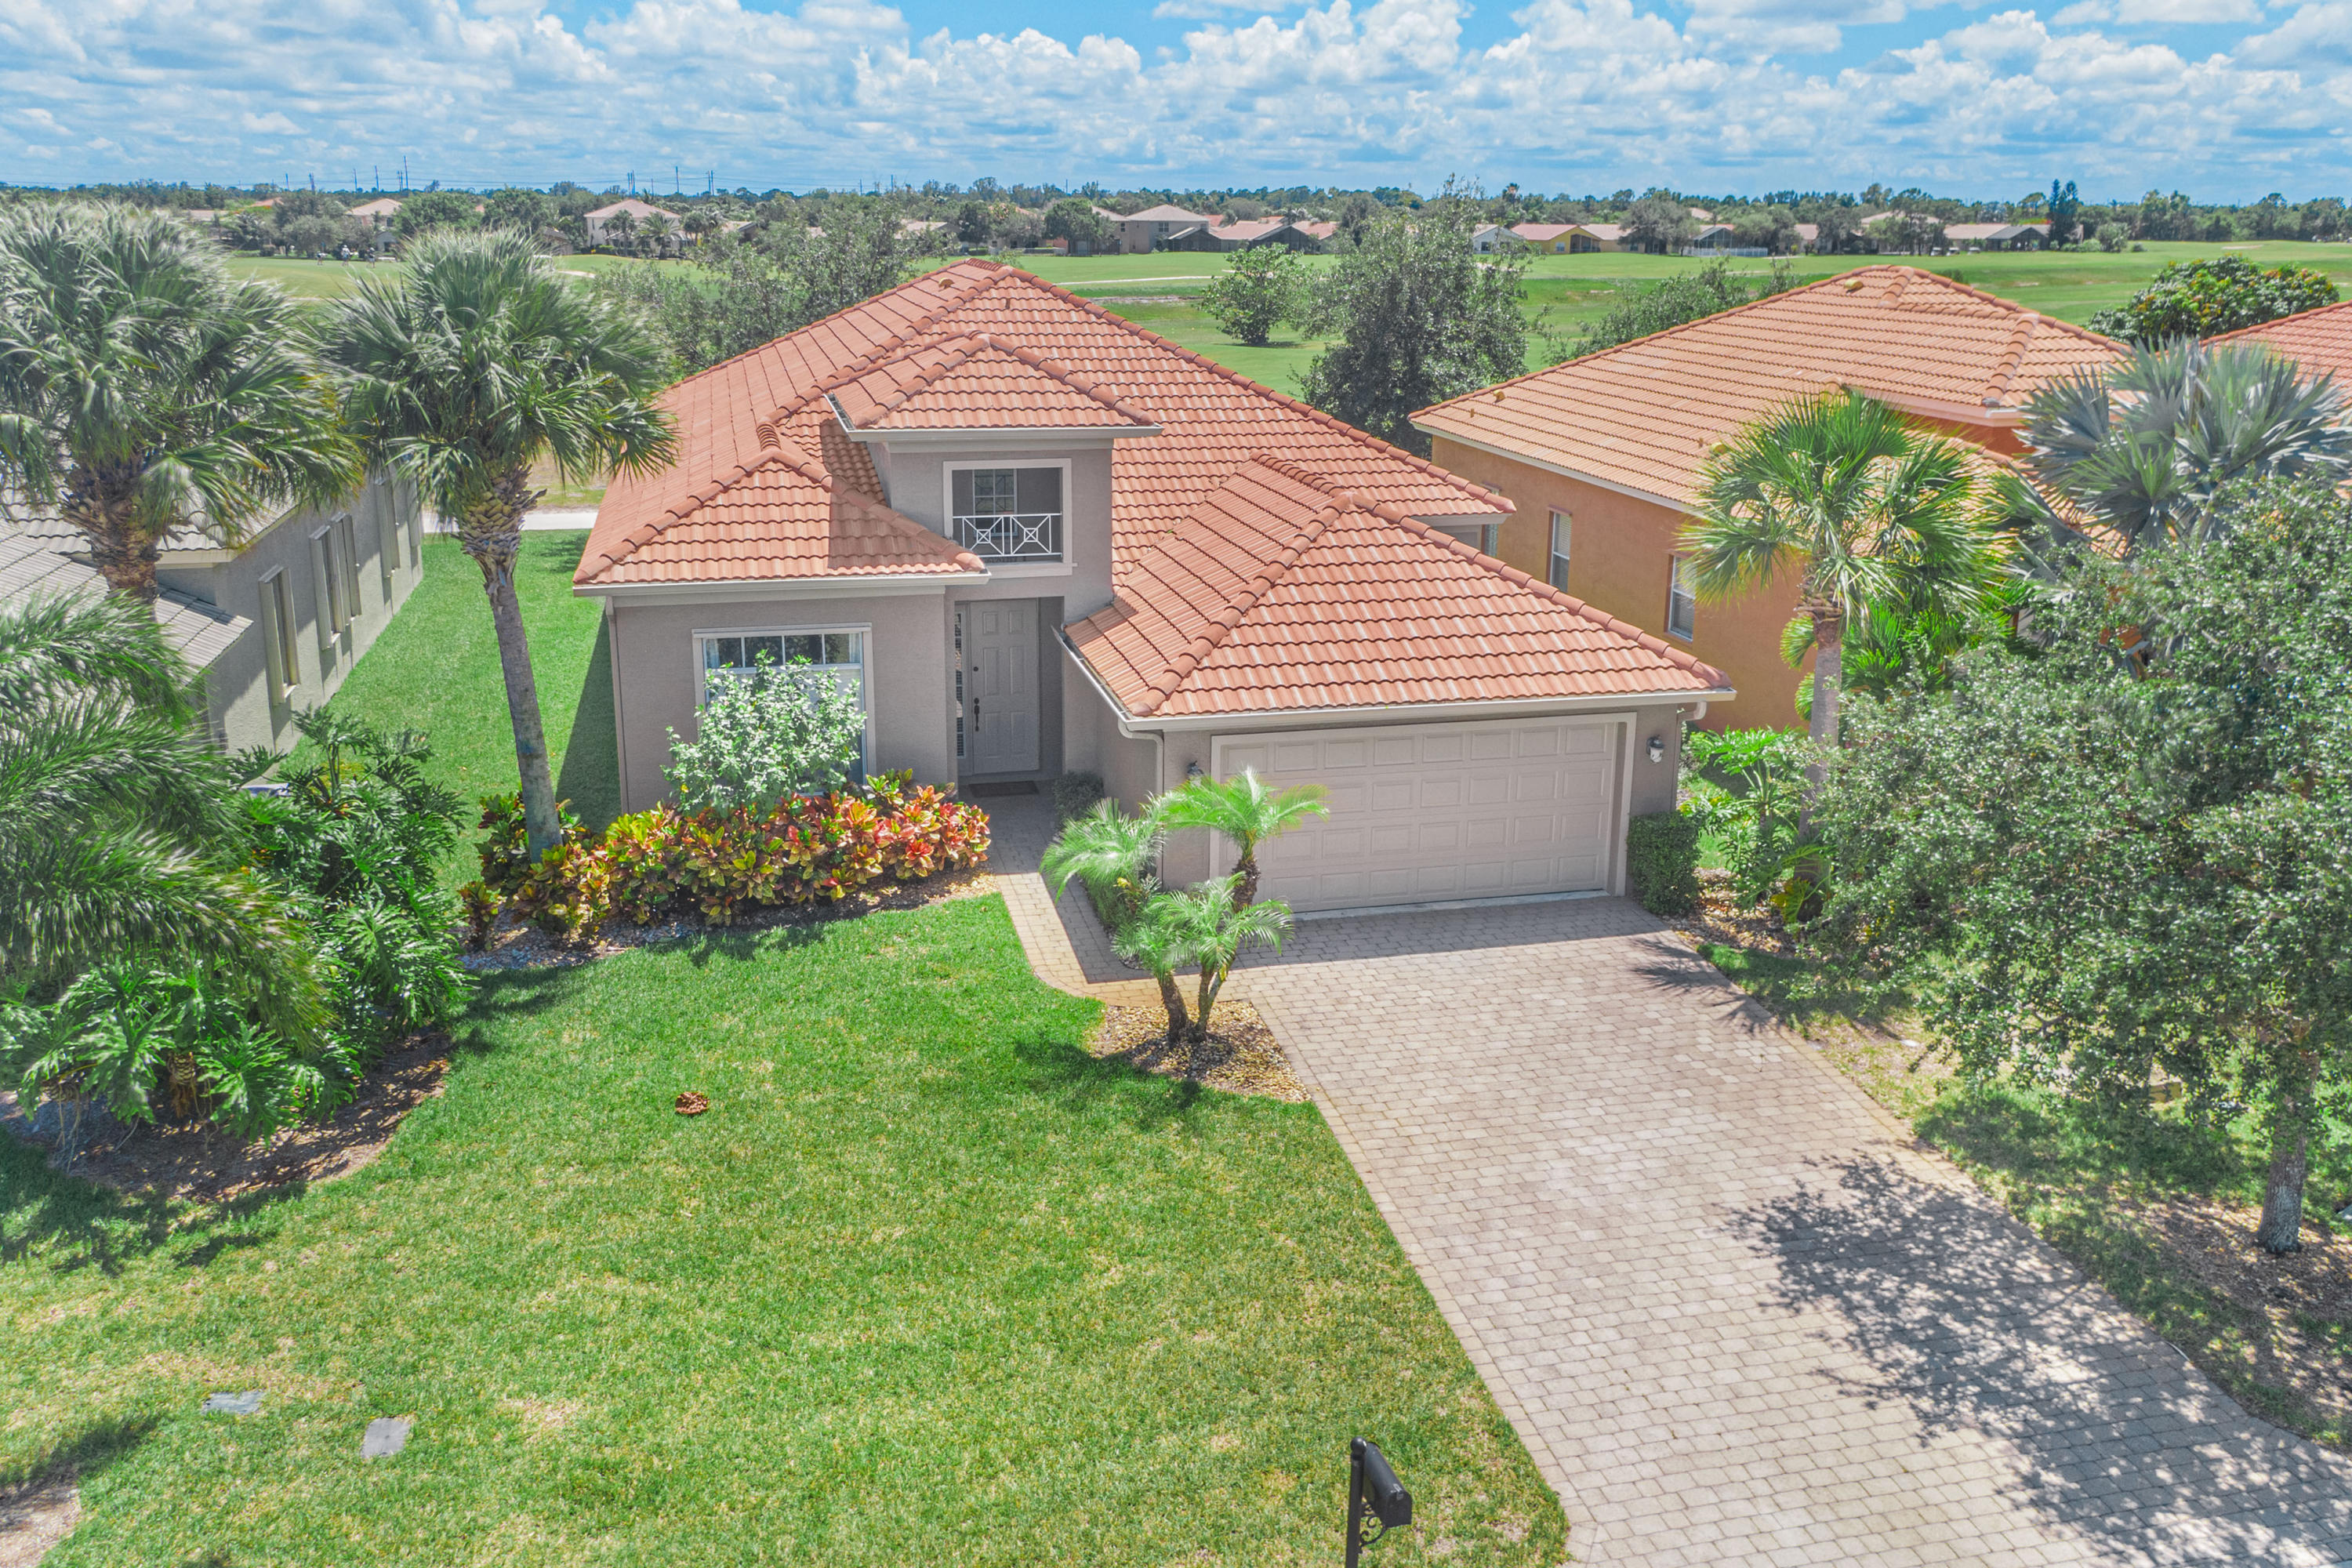 306 Nw Stratford Lane, Port Saint Lucie, FL 34983